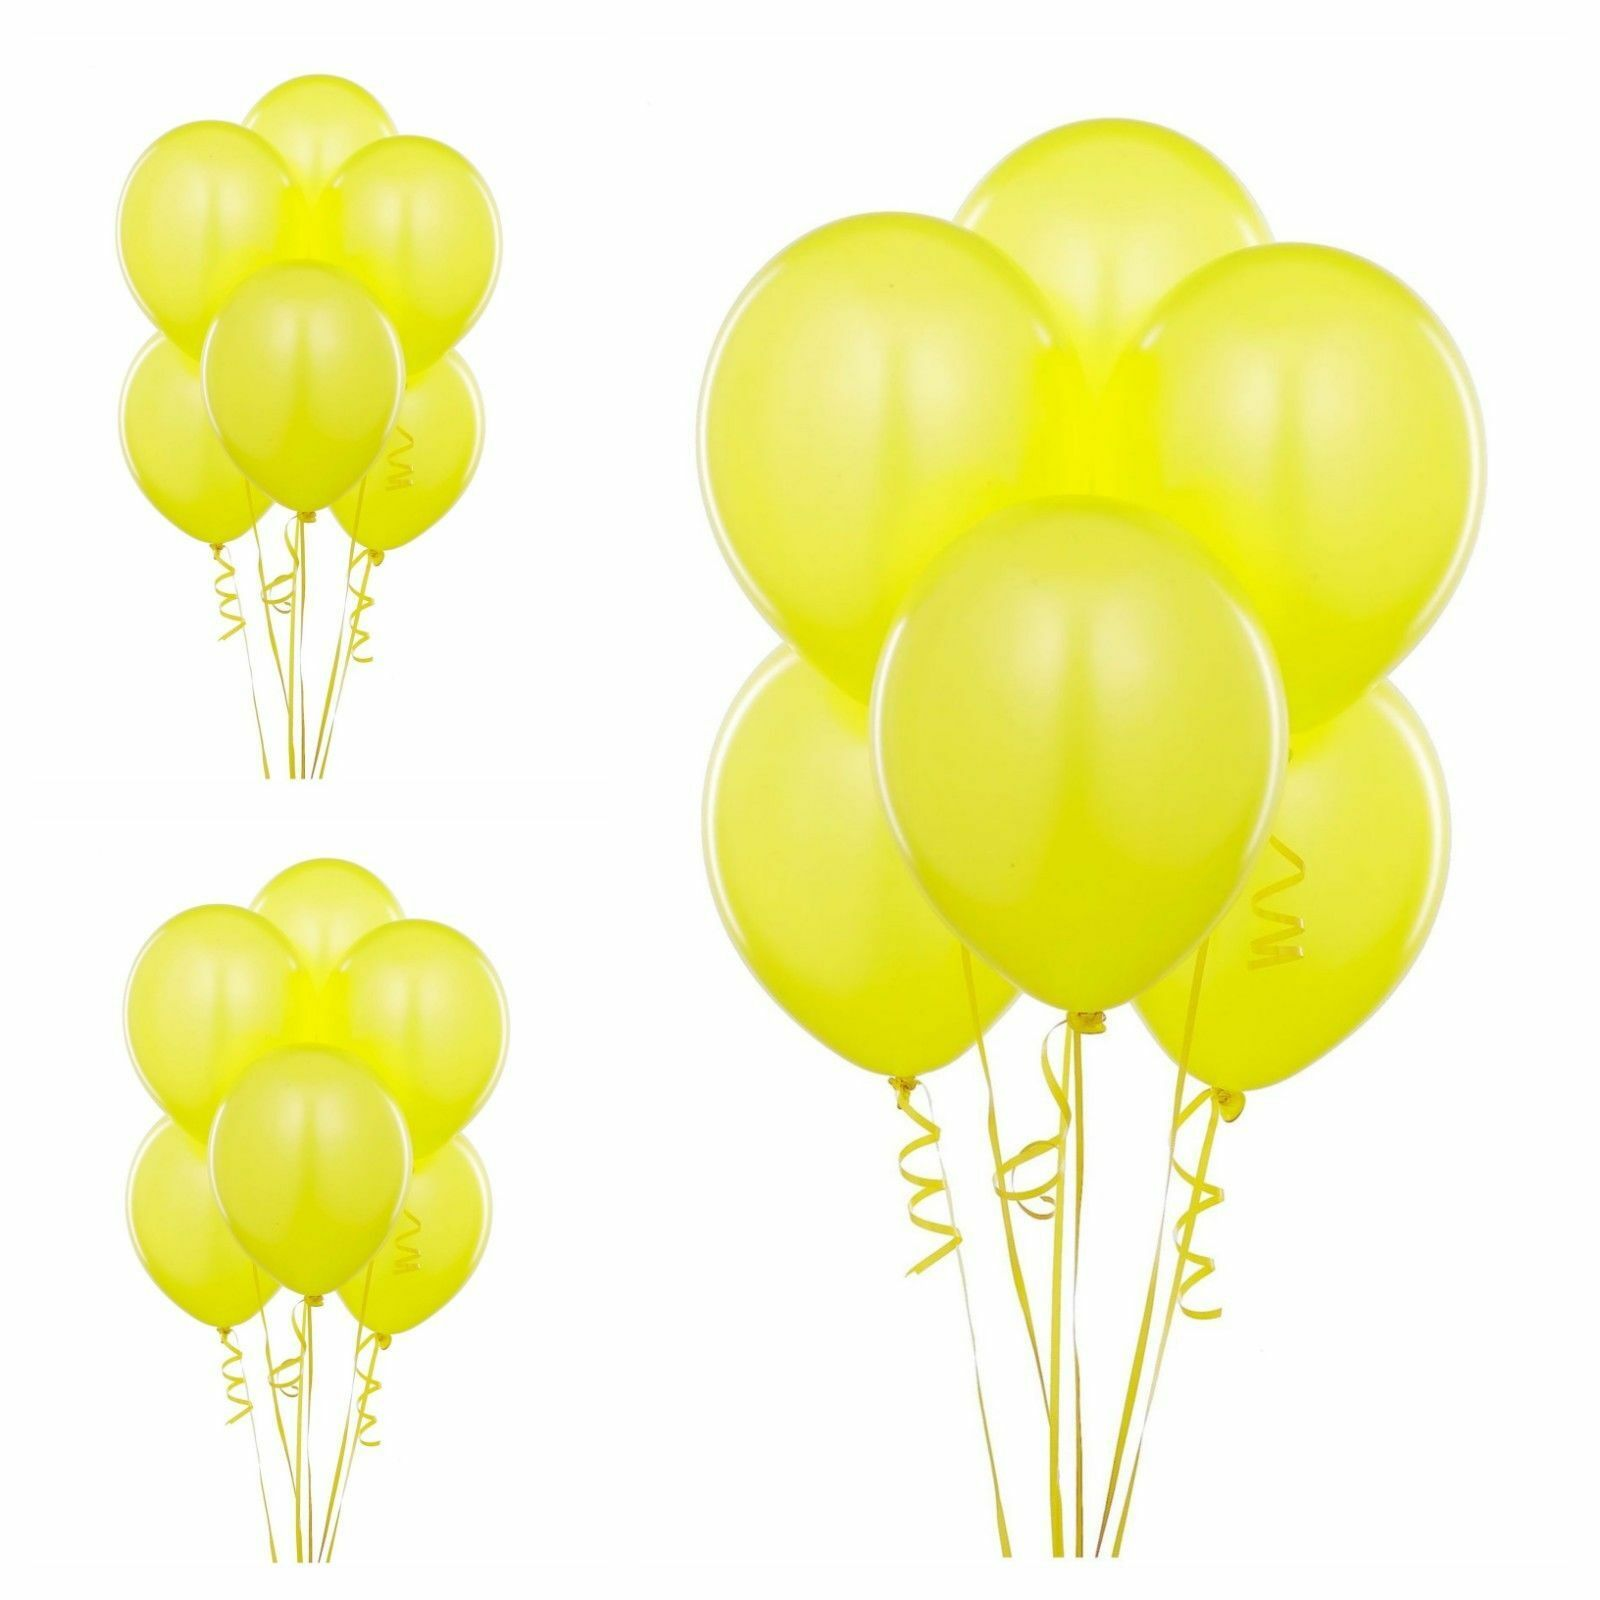 Gelb Colour Wholesale balloons100-5000 10 Latex High Quality Occasion Balloons